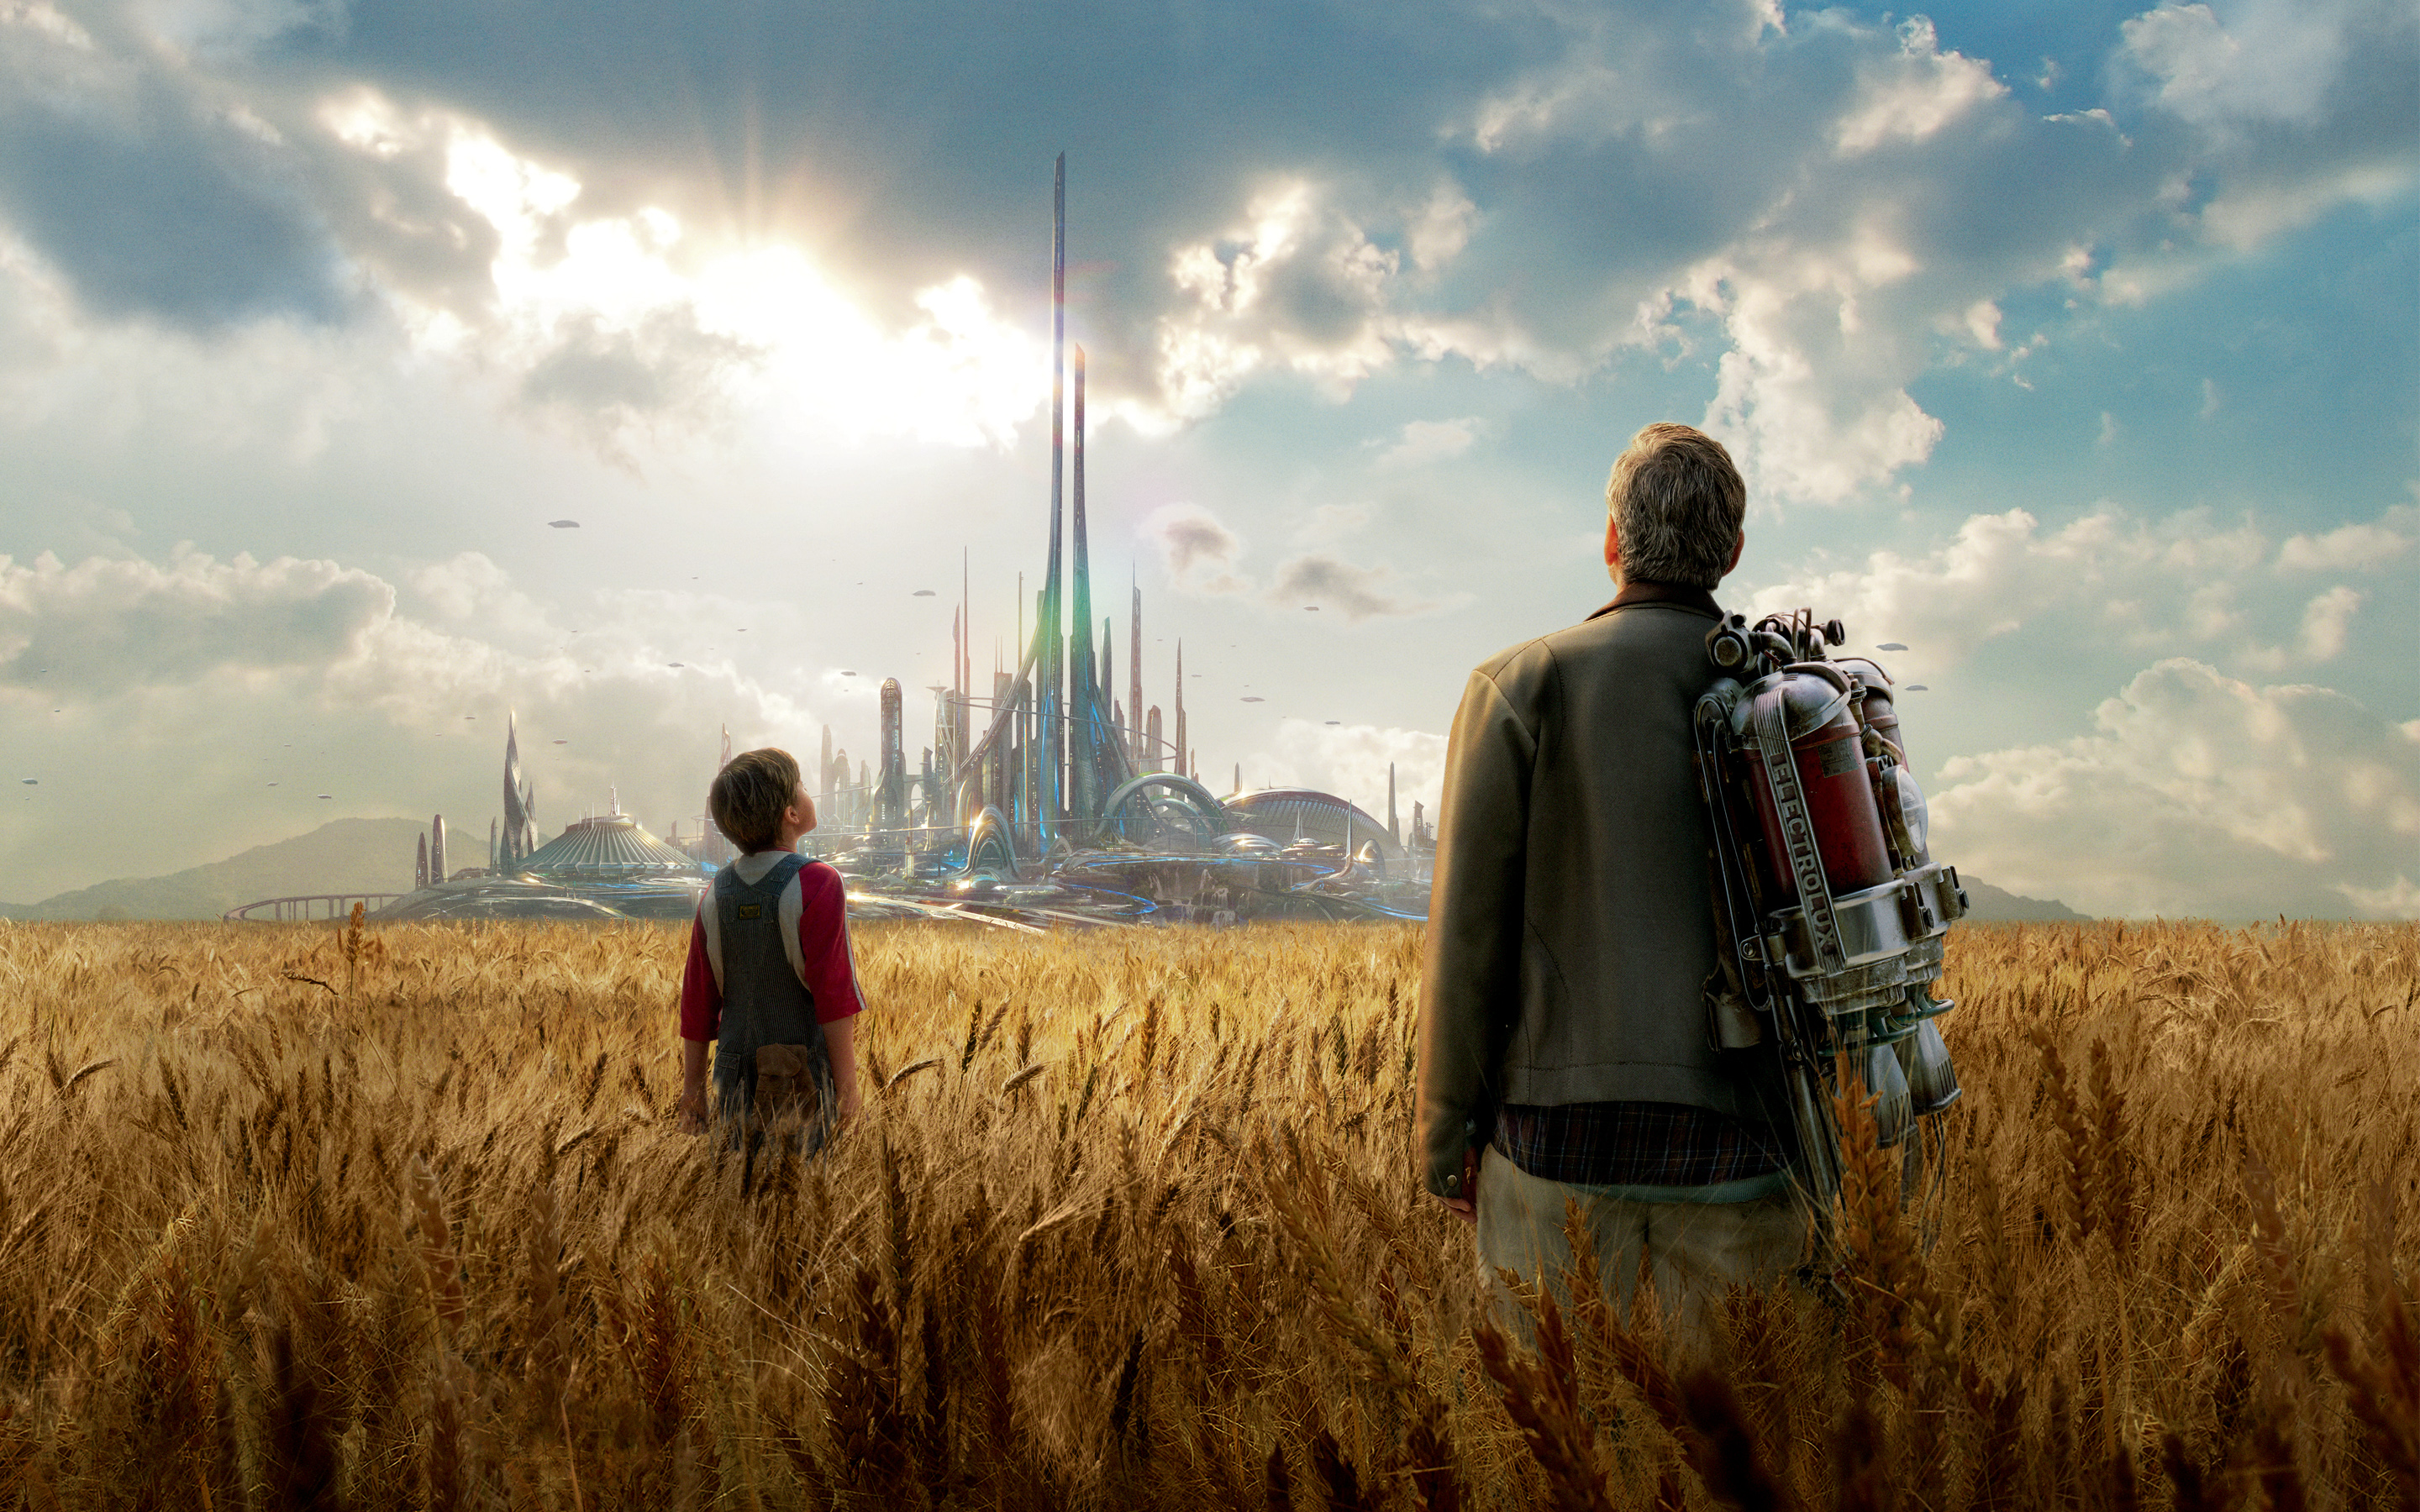 New Tomorrowland Movie Hd Desktop Wallpapers 2015  All Hd